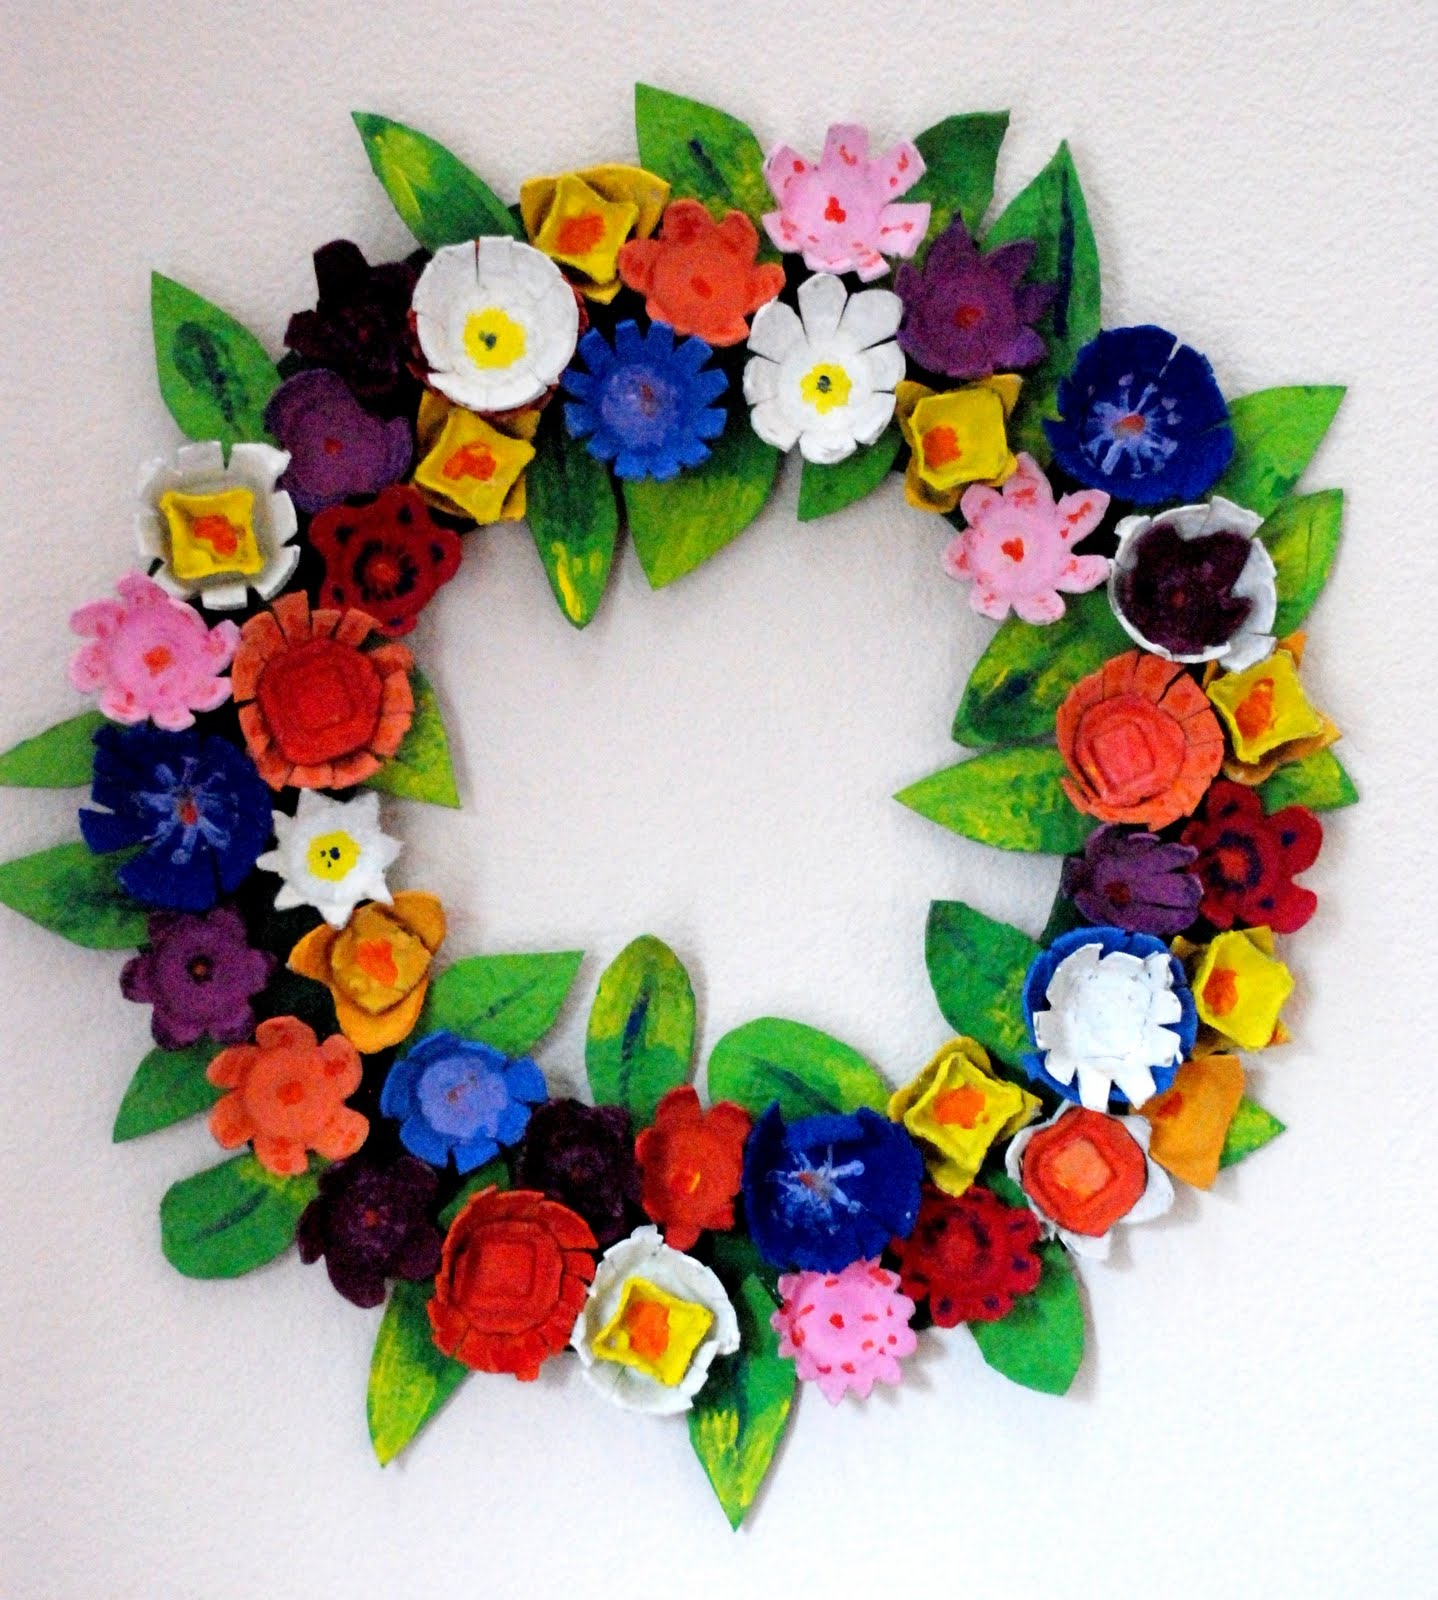 homemade serenity make it egg carton wreath